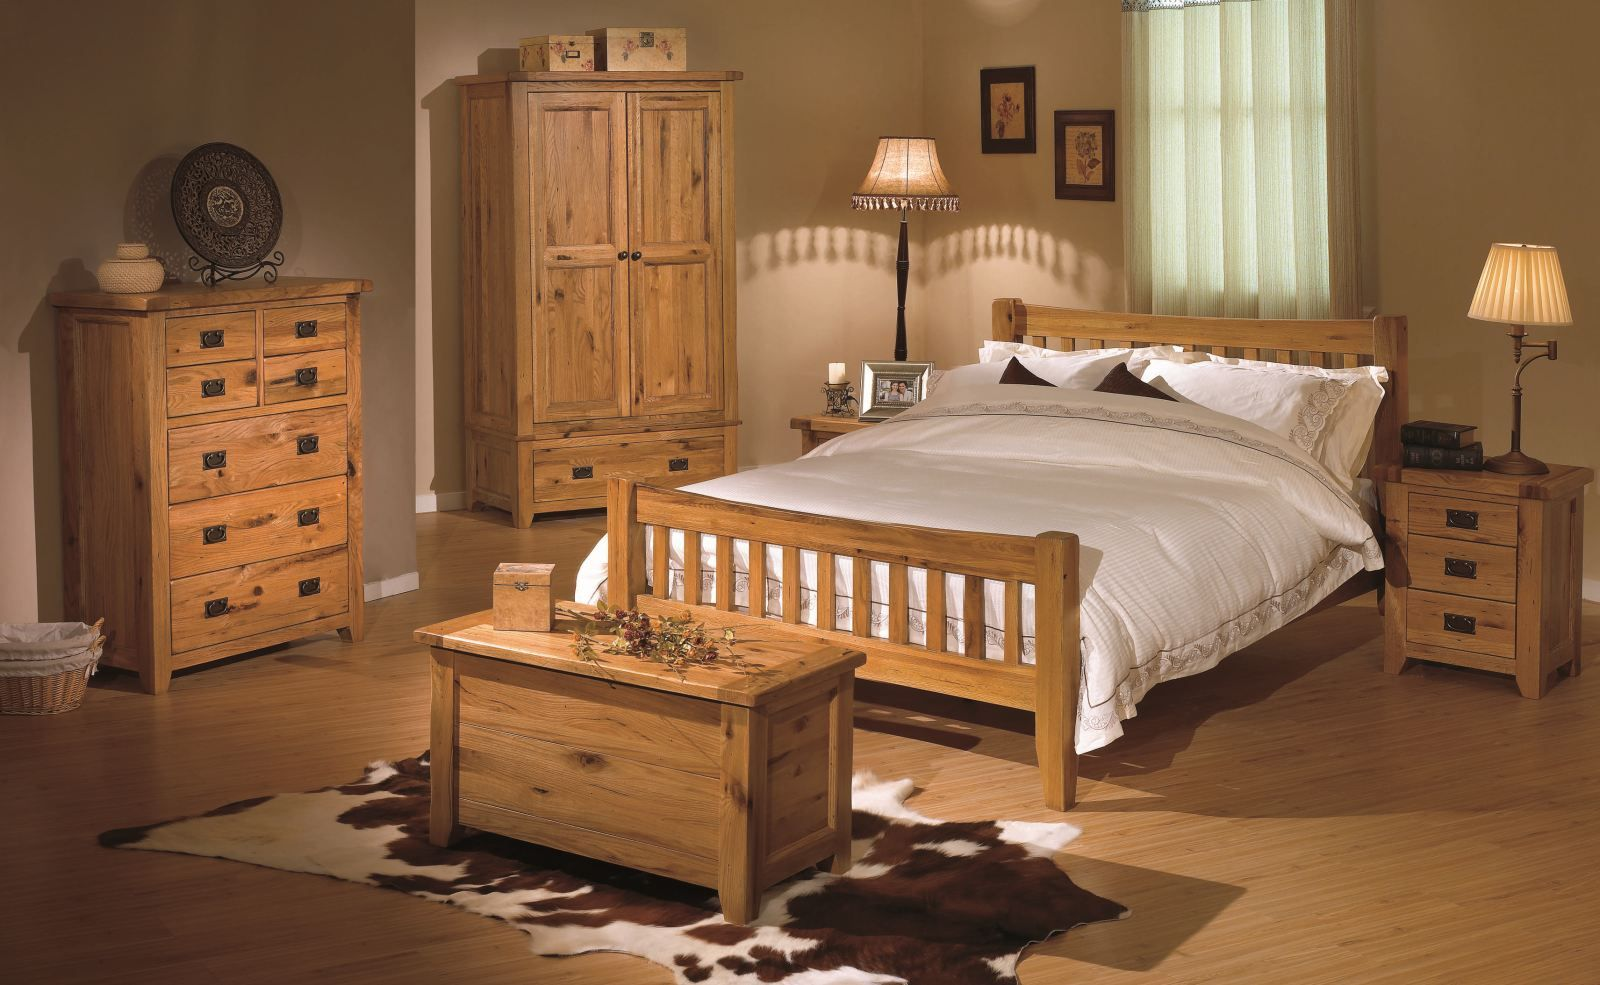 American Red Oak Bedroom Furniture Cramond Collection Rooms To Go Sets